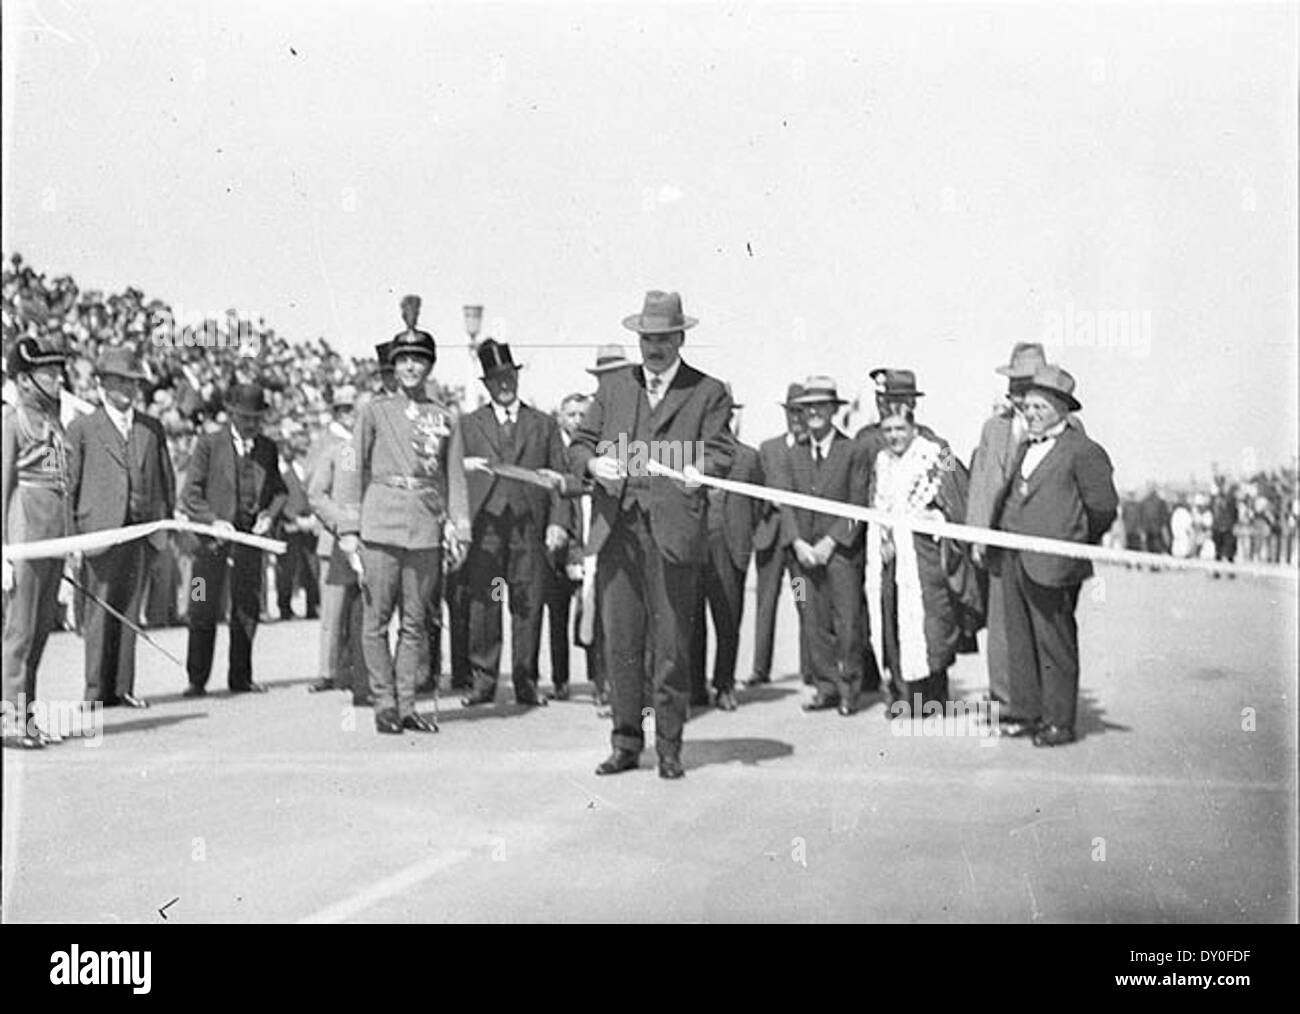 Jack Lang, watched by Sir Philip Game, cuts official ribbon, 19th March 1932 / photographed by Sam Hood - Stock Image